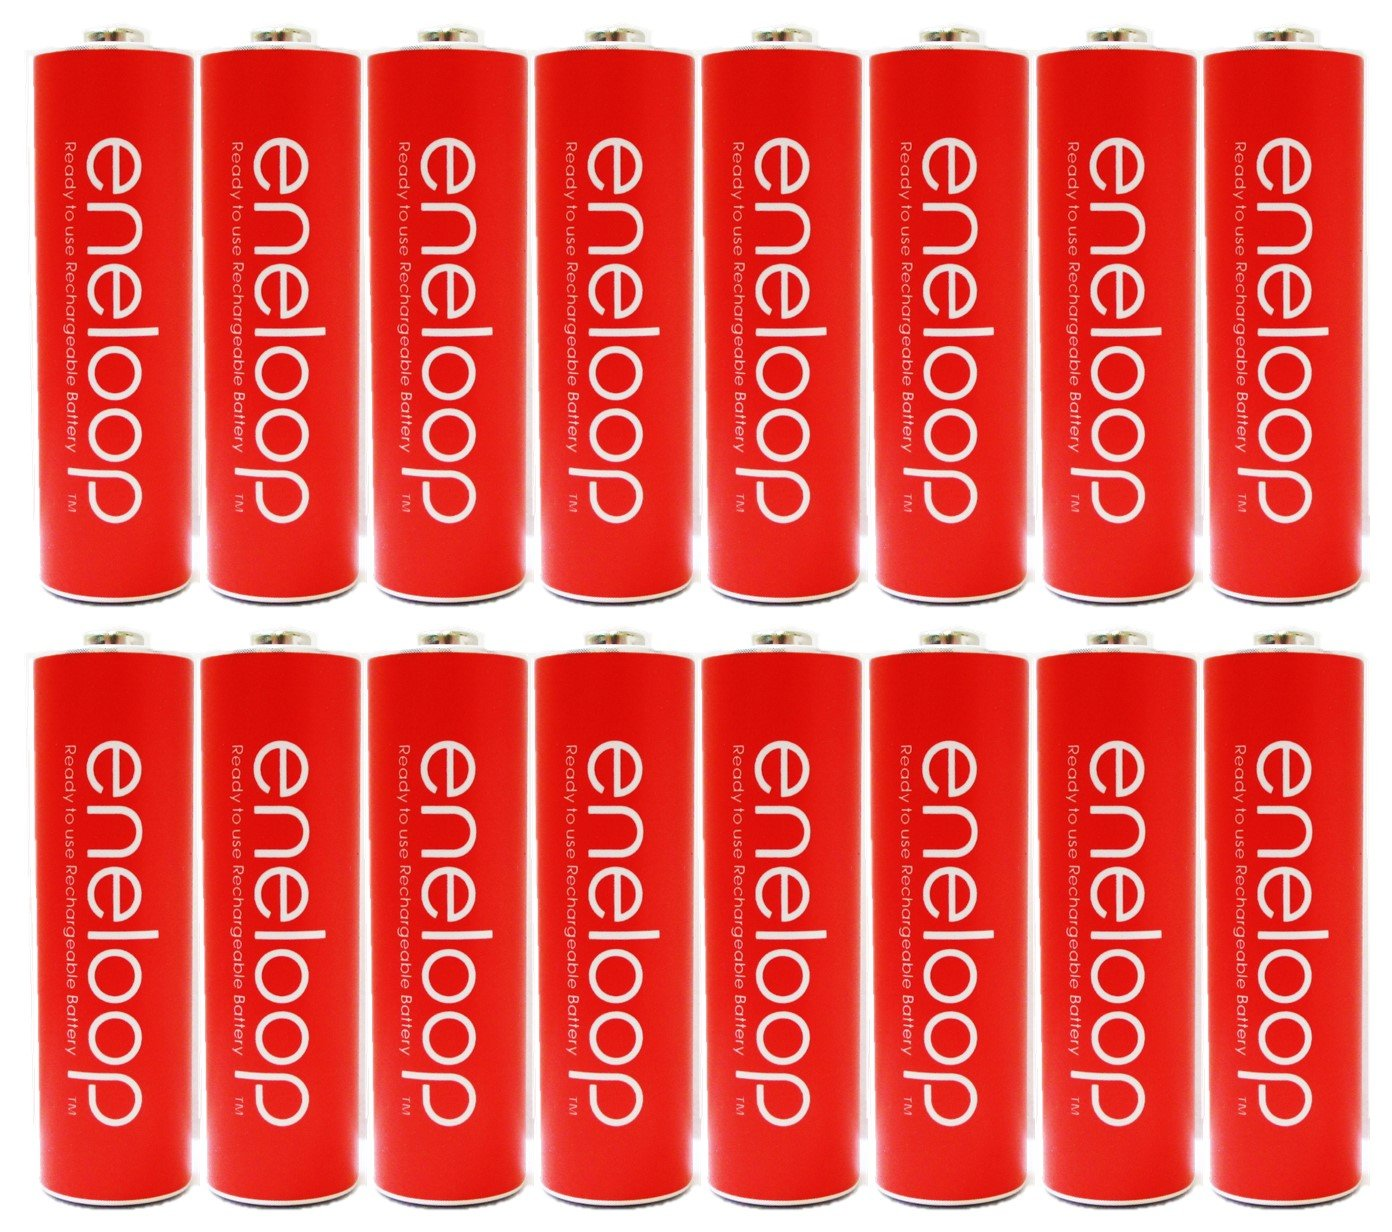 Eneloop Panasonic AA NiMH Pre-Charged Rechargeable Batteries with Holder, 16 Pack, Red by eneloop